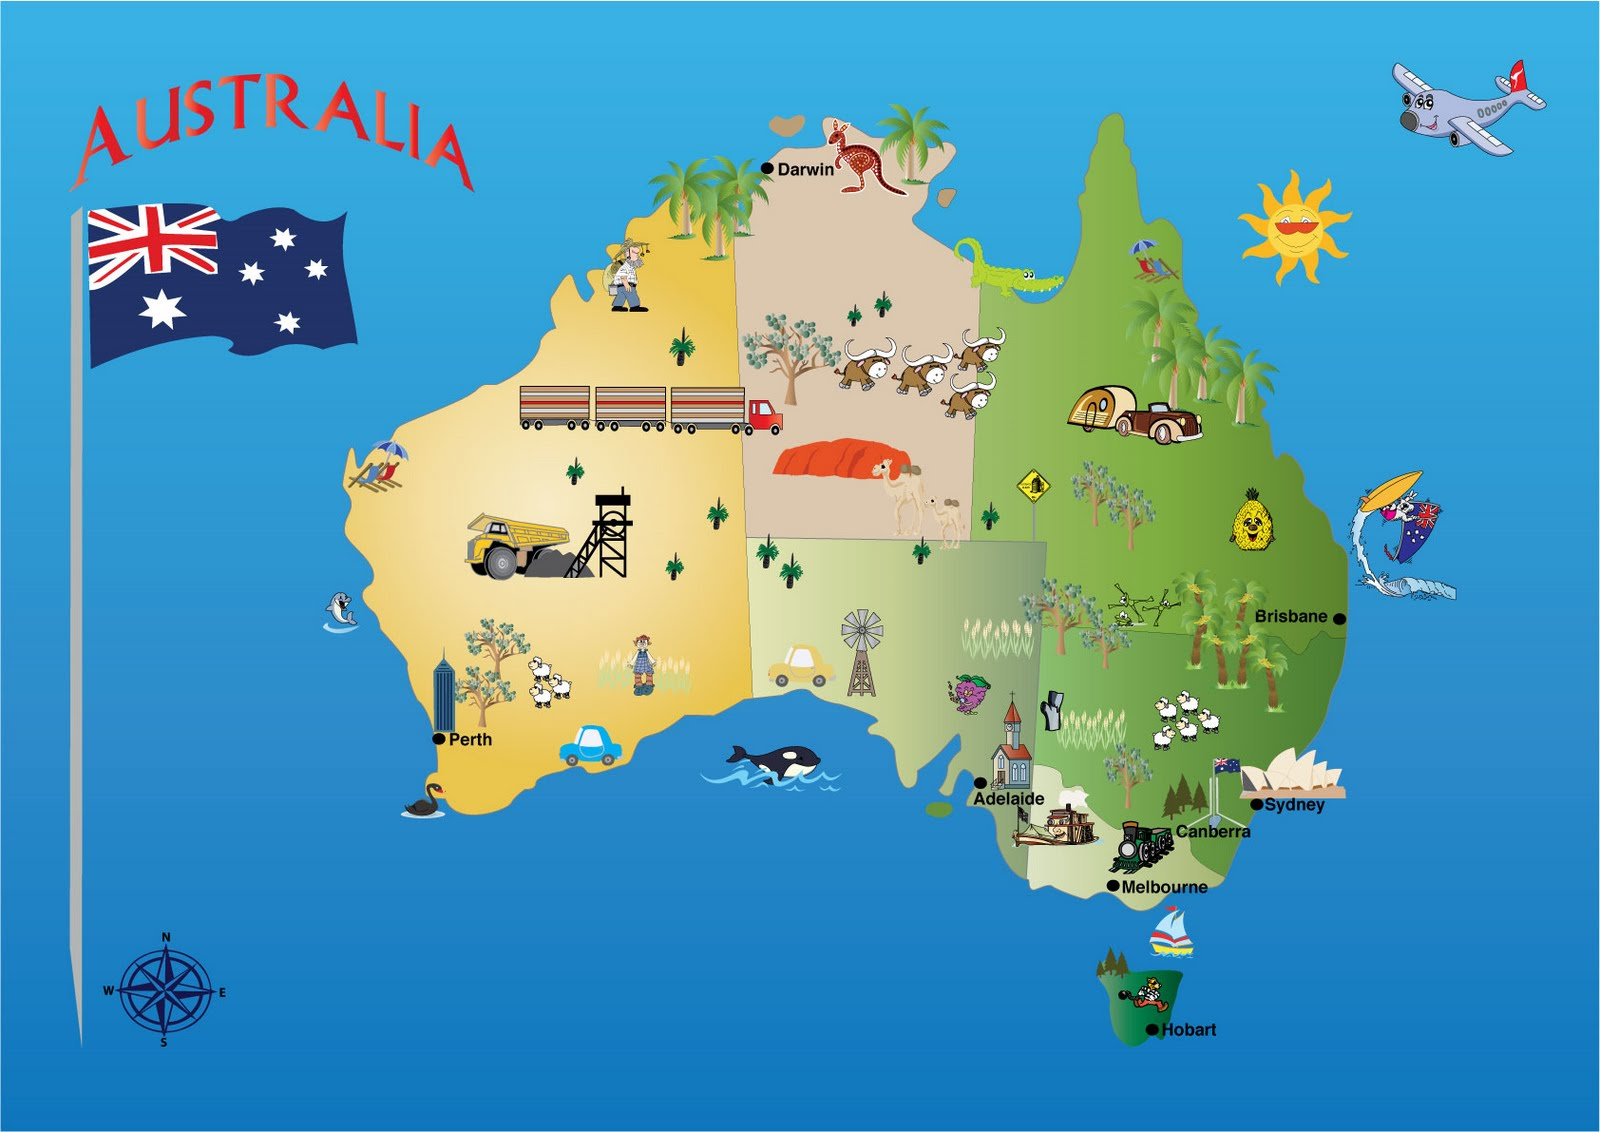 map of australia courtesy of michelles creative blog httpkindofcreative